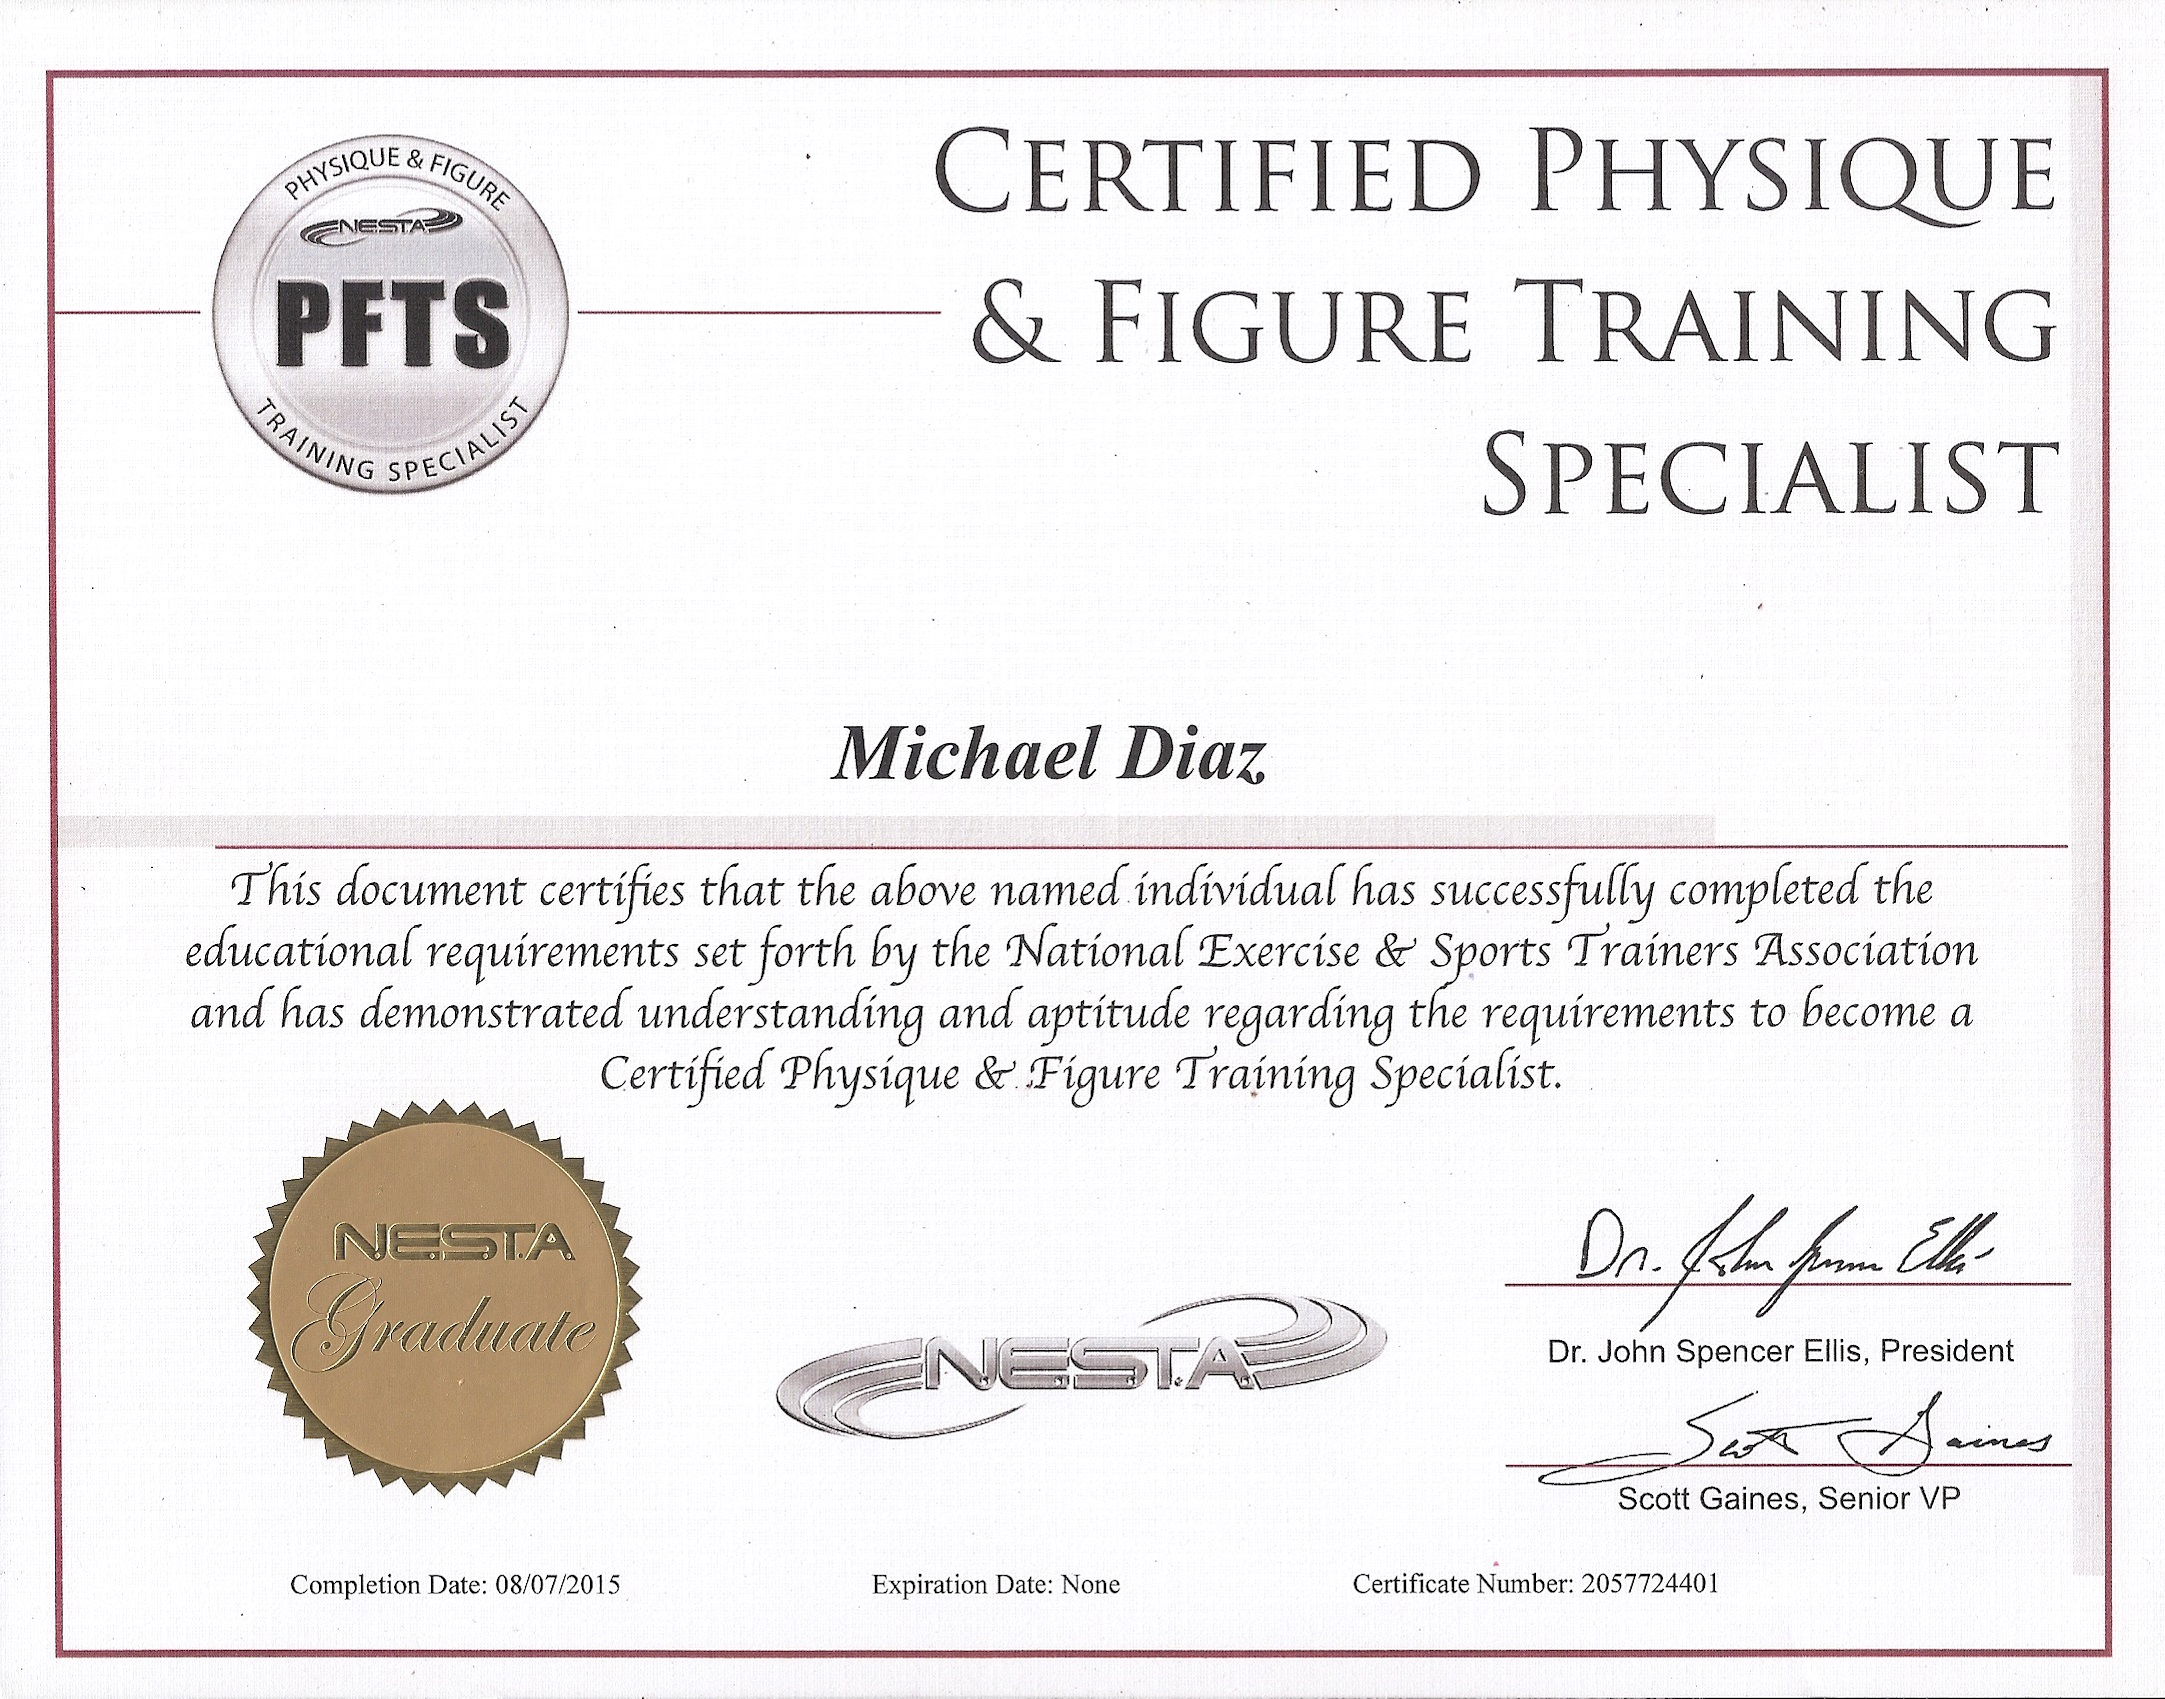 NESTA PHYSIQUE AND FIGURE TRAINING SPECIALIST0001.jpg